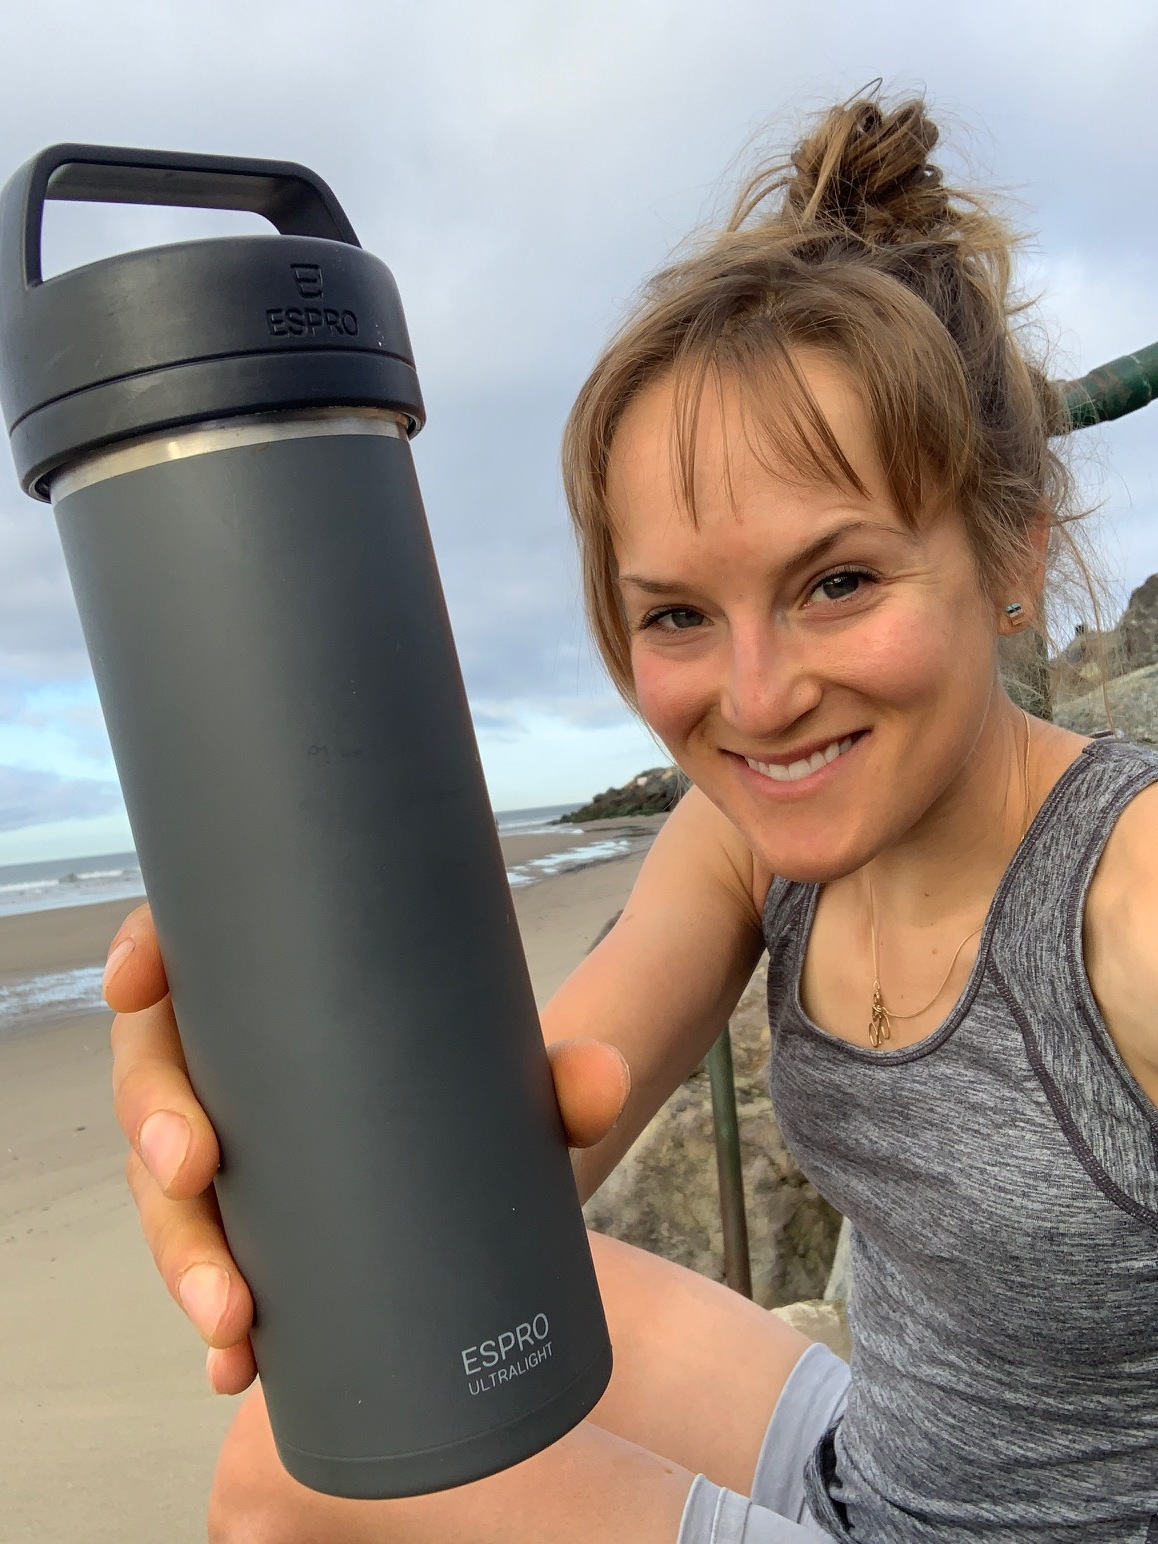 Lex Albrecht on the California beach girl with ESPRO Ultralight frenchpress travel mug